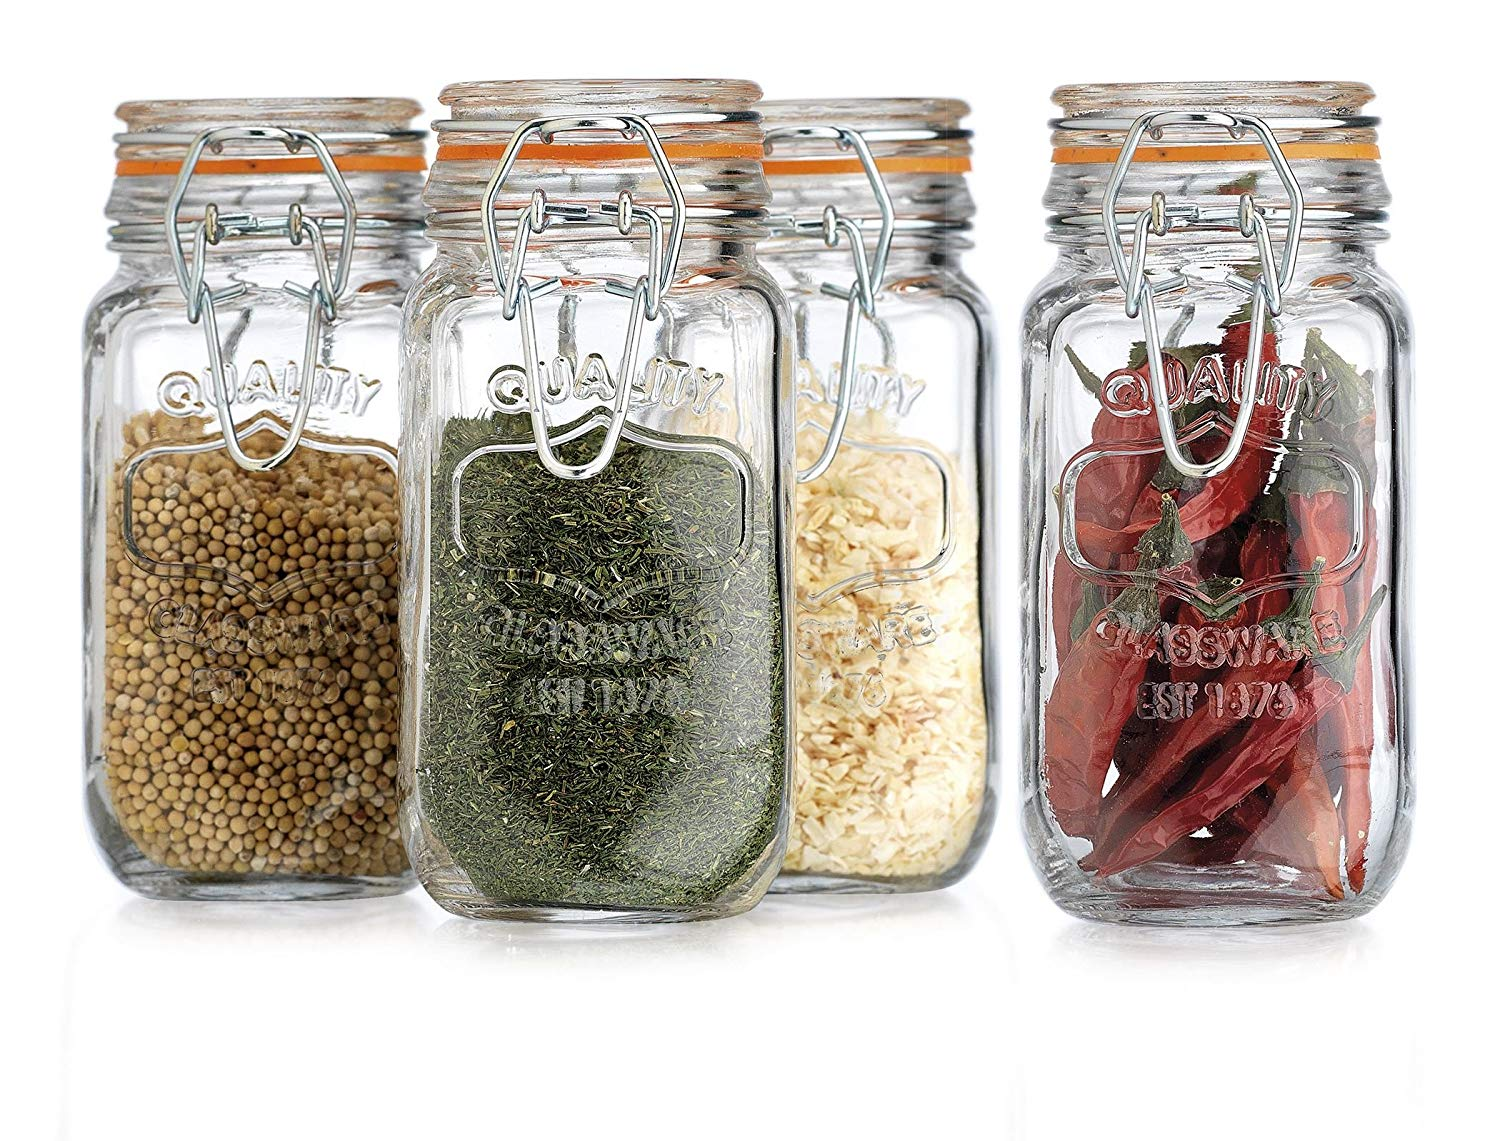 HC Elegant Home Airtight Glass Spice Jar Hermetic Seal Bail & Trigger/Jar with Lid 6 Ounce Each Use As Spice Canister Set of 4 6 Ounce Each